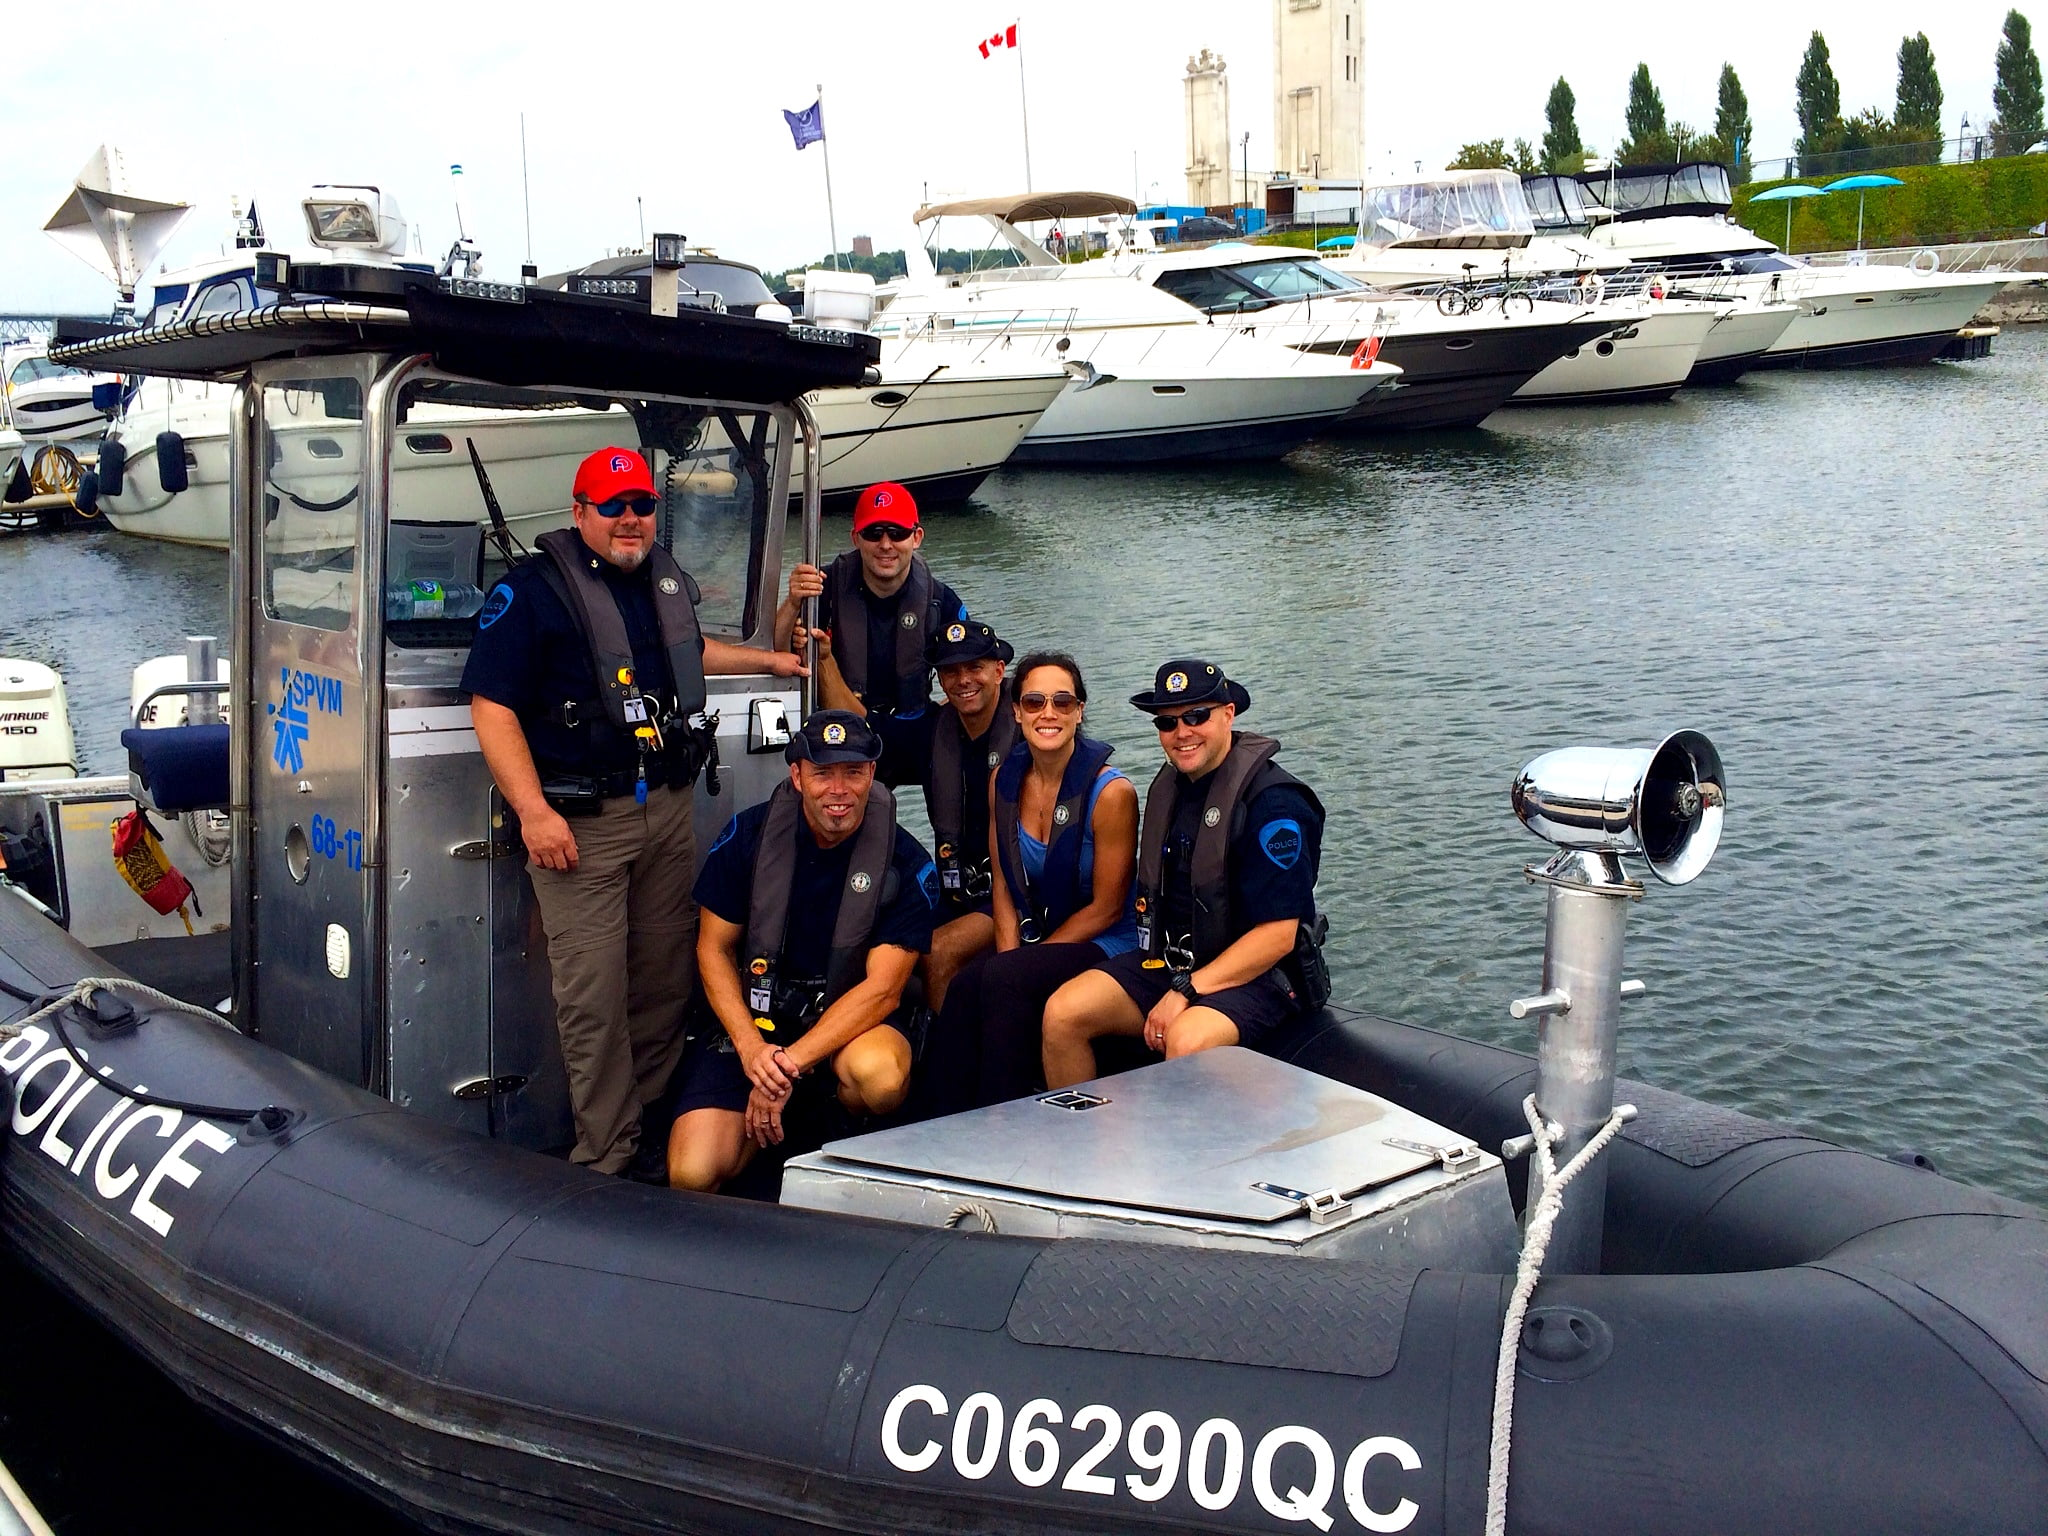 Officers Yannick Ouimet (on my left in the photo) with fellow members of the SPVM nautical division